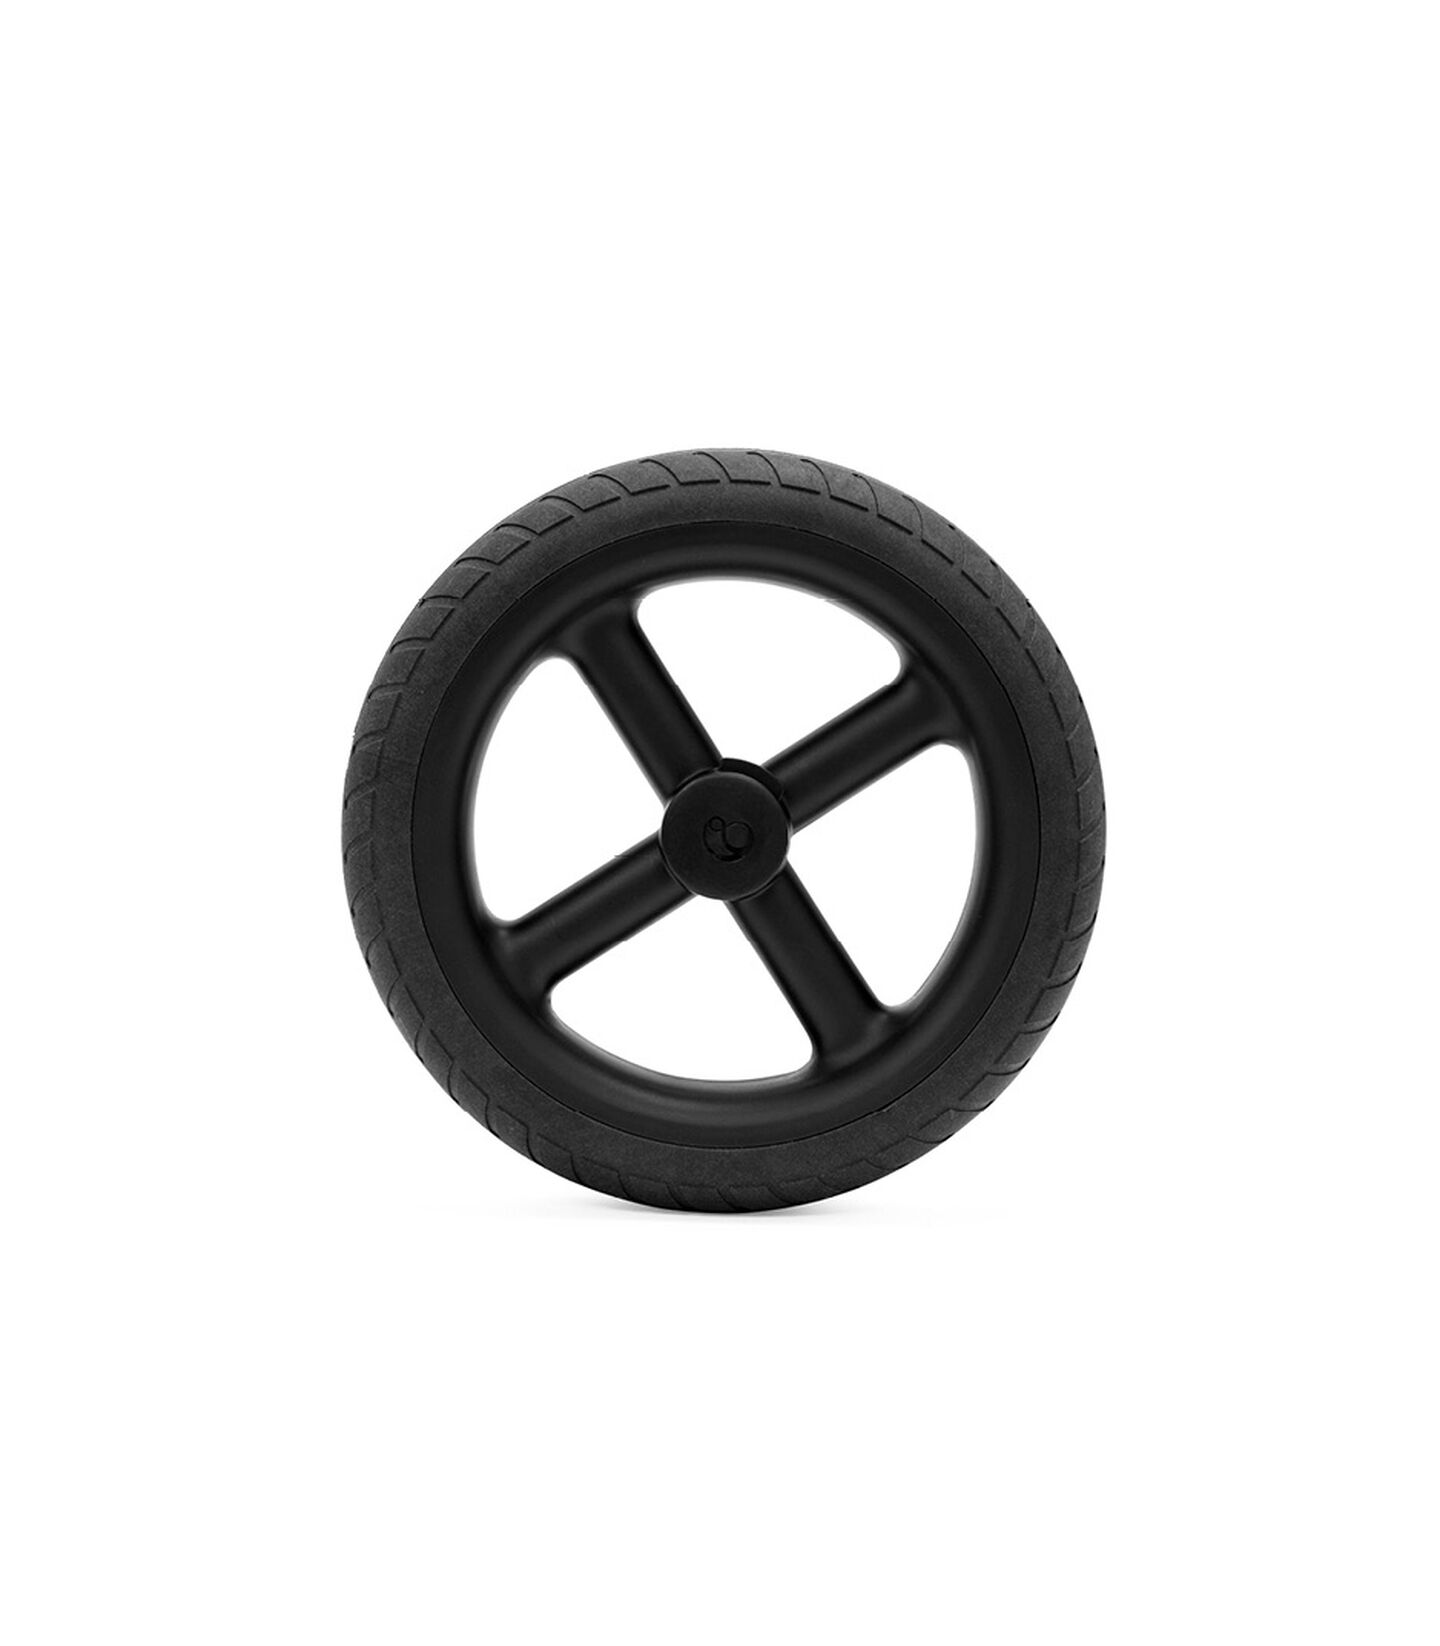 Stokke® Beat back wheel (single packed), , mainview view 2